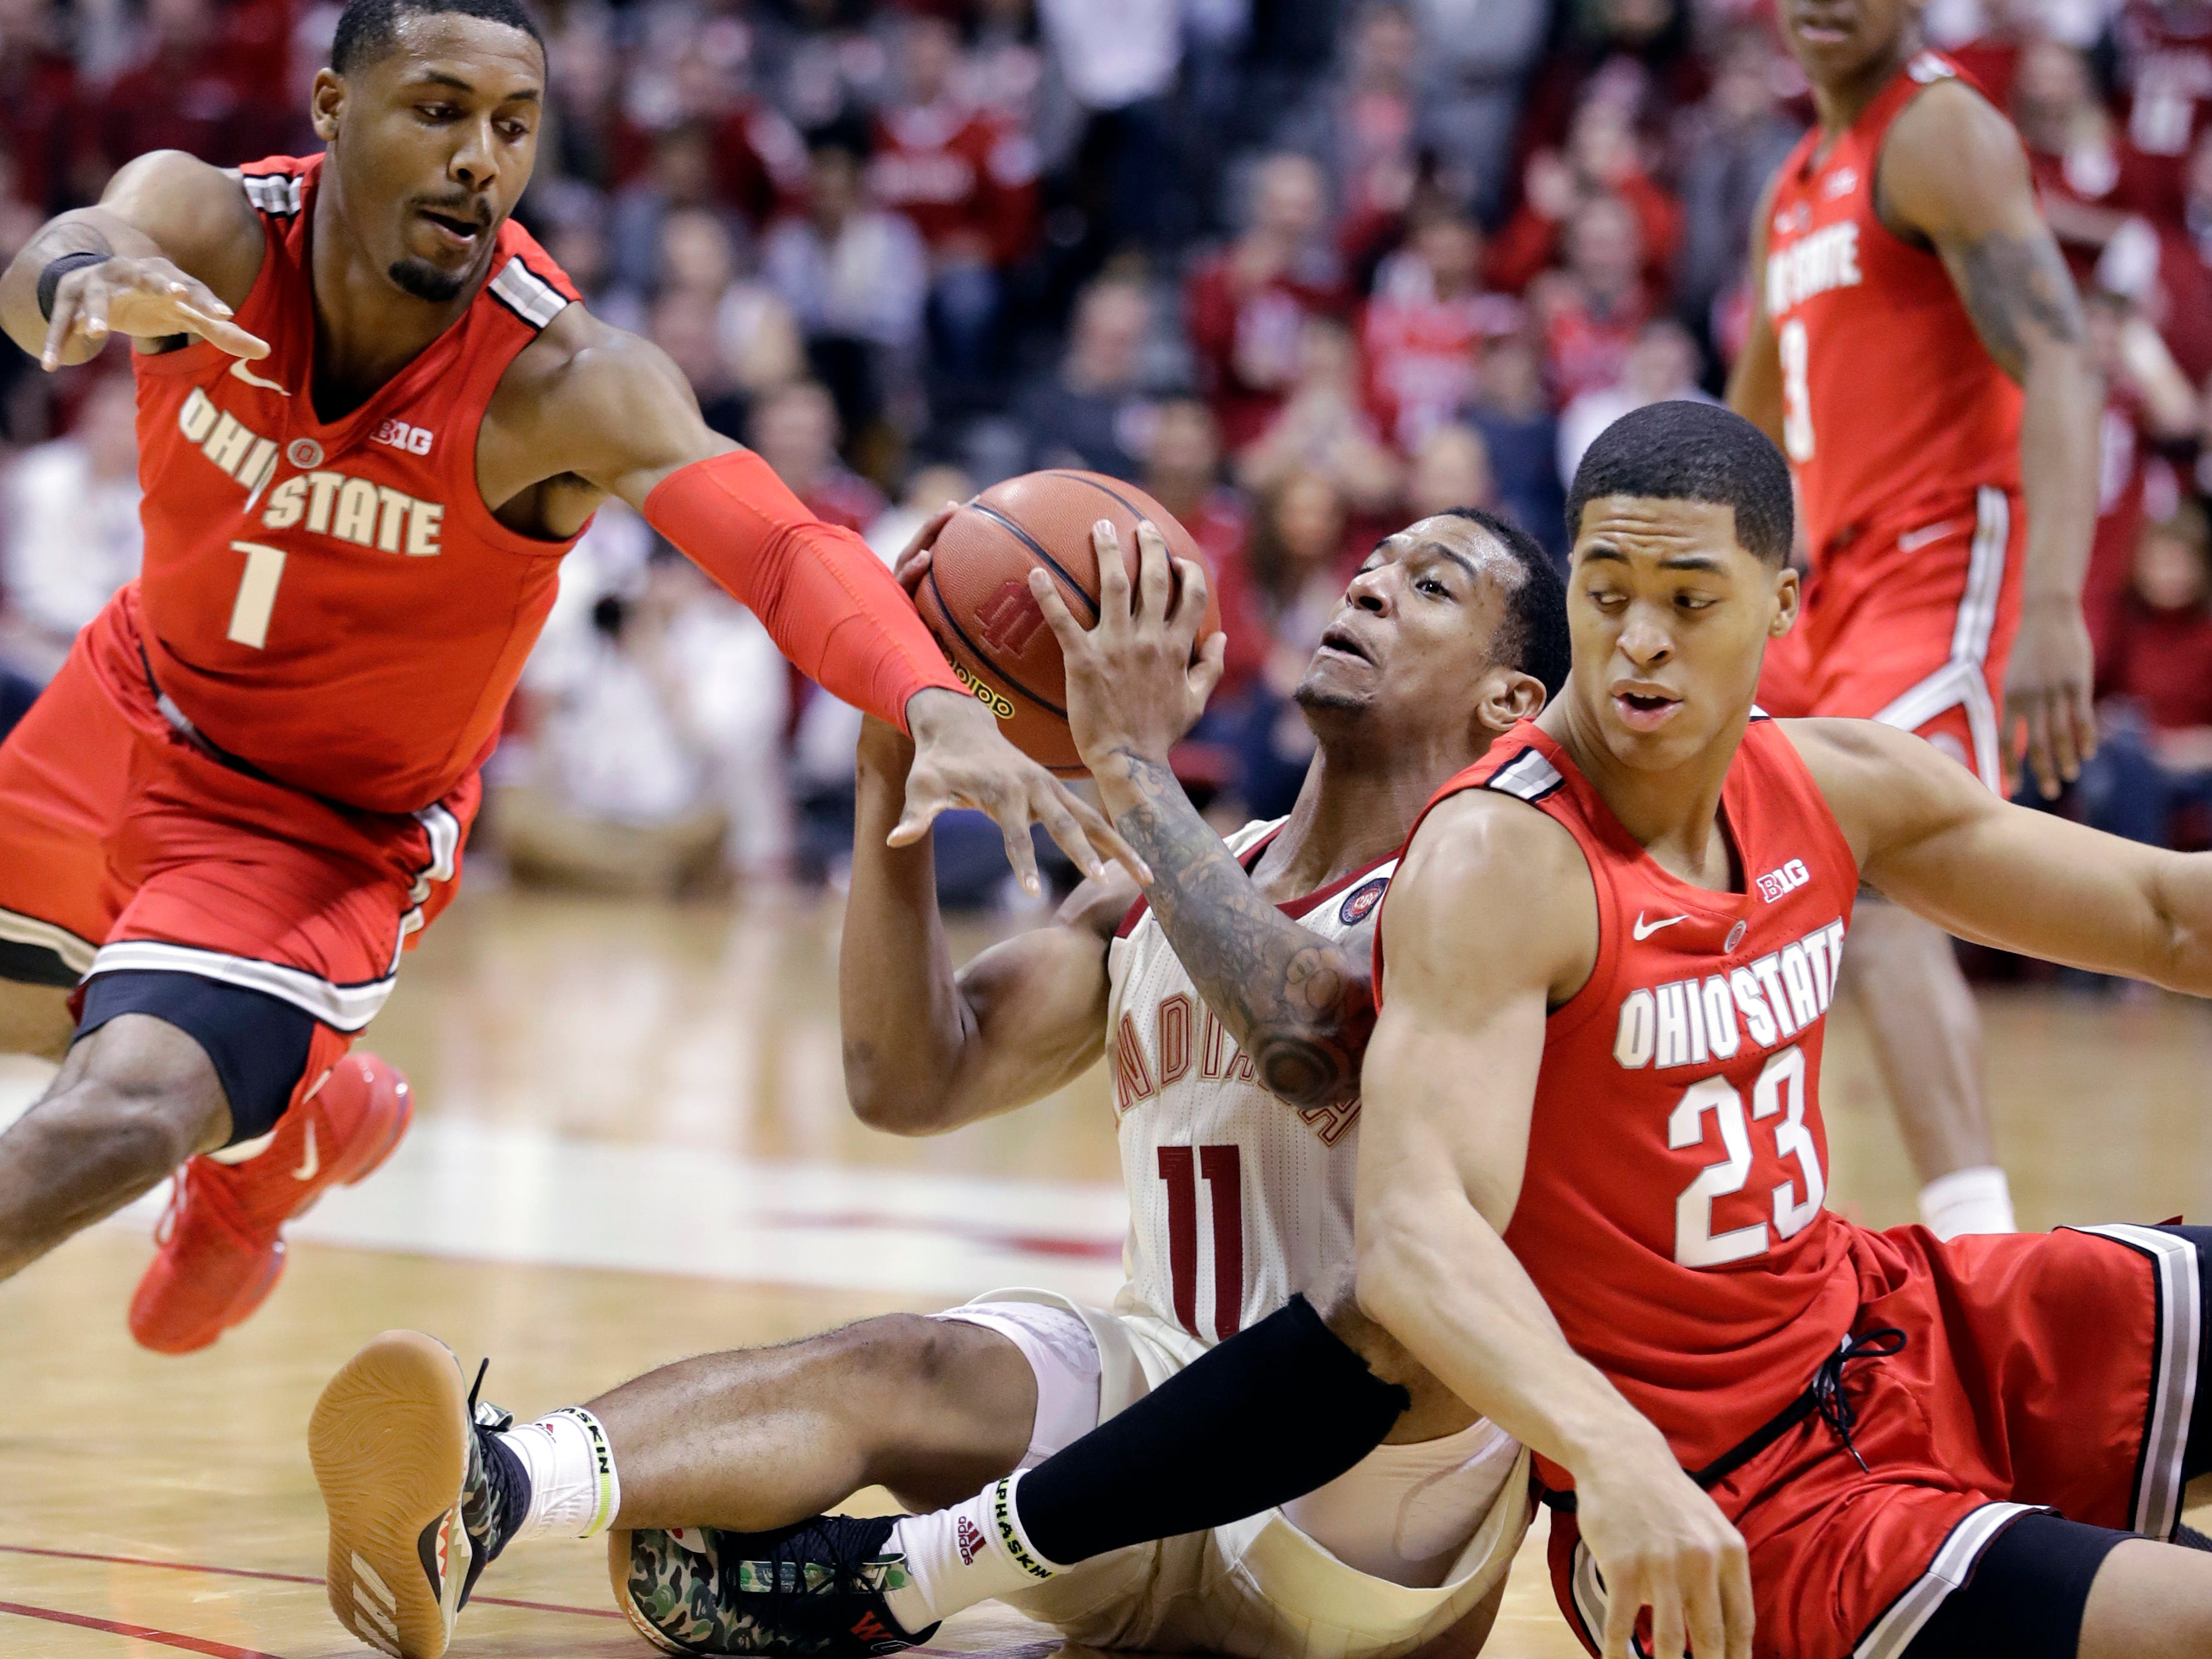 Indiana's Devonte Green (11) controls the ball against Ohio State's Luther Muhammad (1) and Jaedon LeDee (23) during the first half of an NCAA college basketball game, Sunday, Feb. 10, 2019, in Bloomington, Ind.